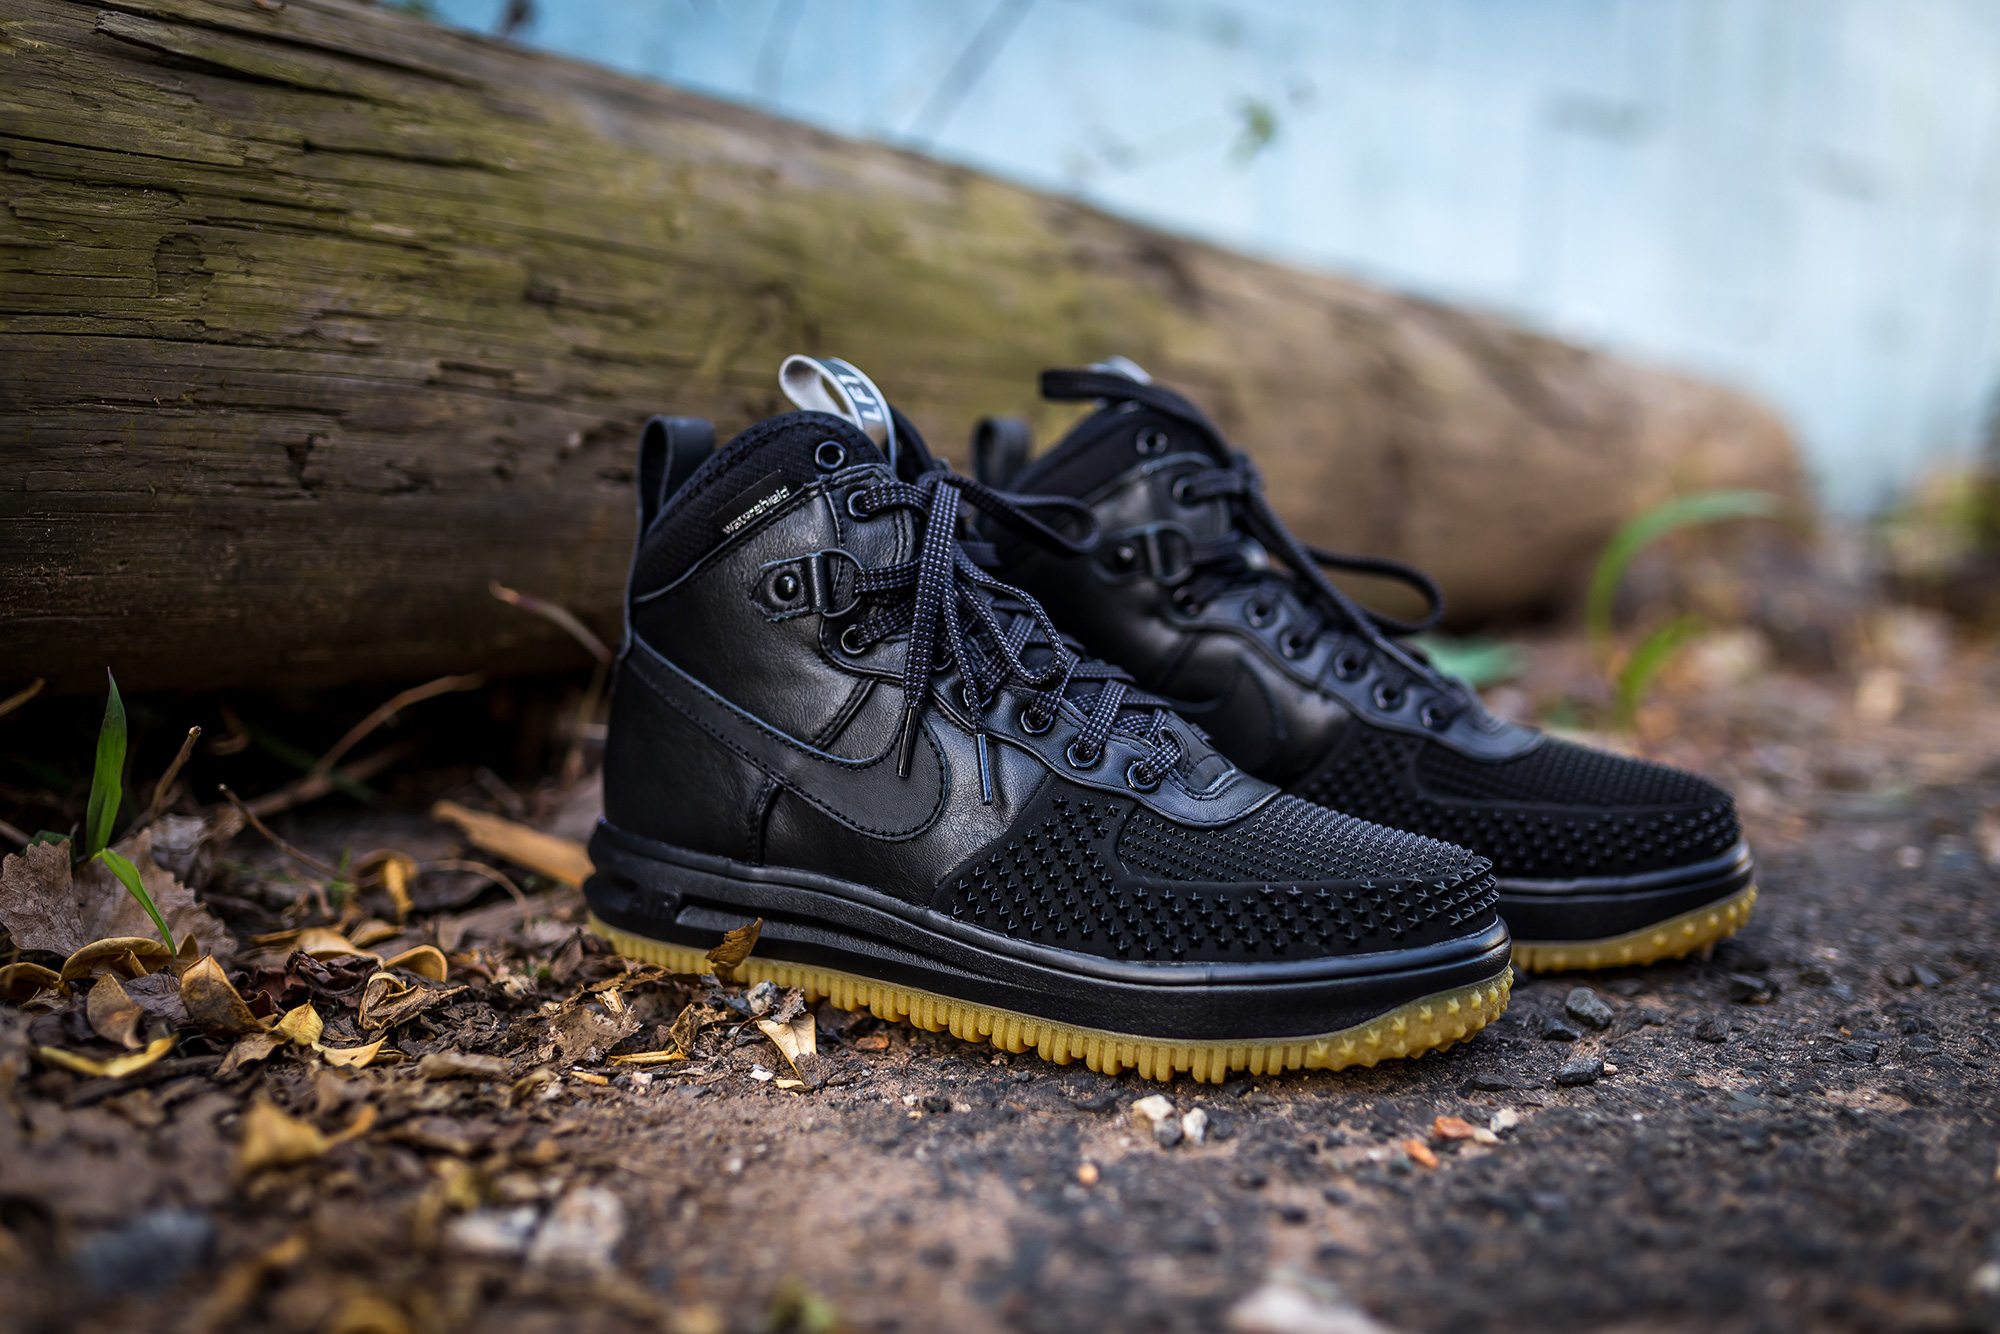 Nike Lunar Force 1 Duckboot Packer Shoes